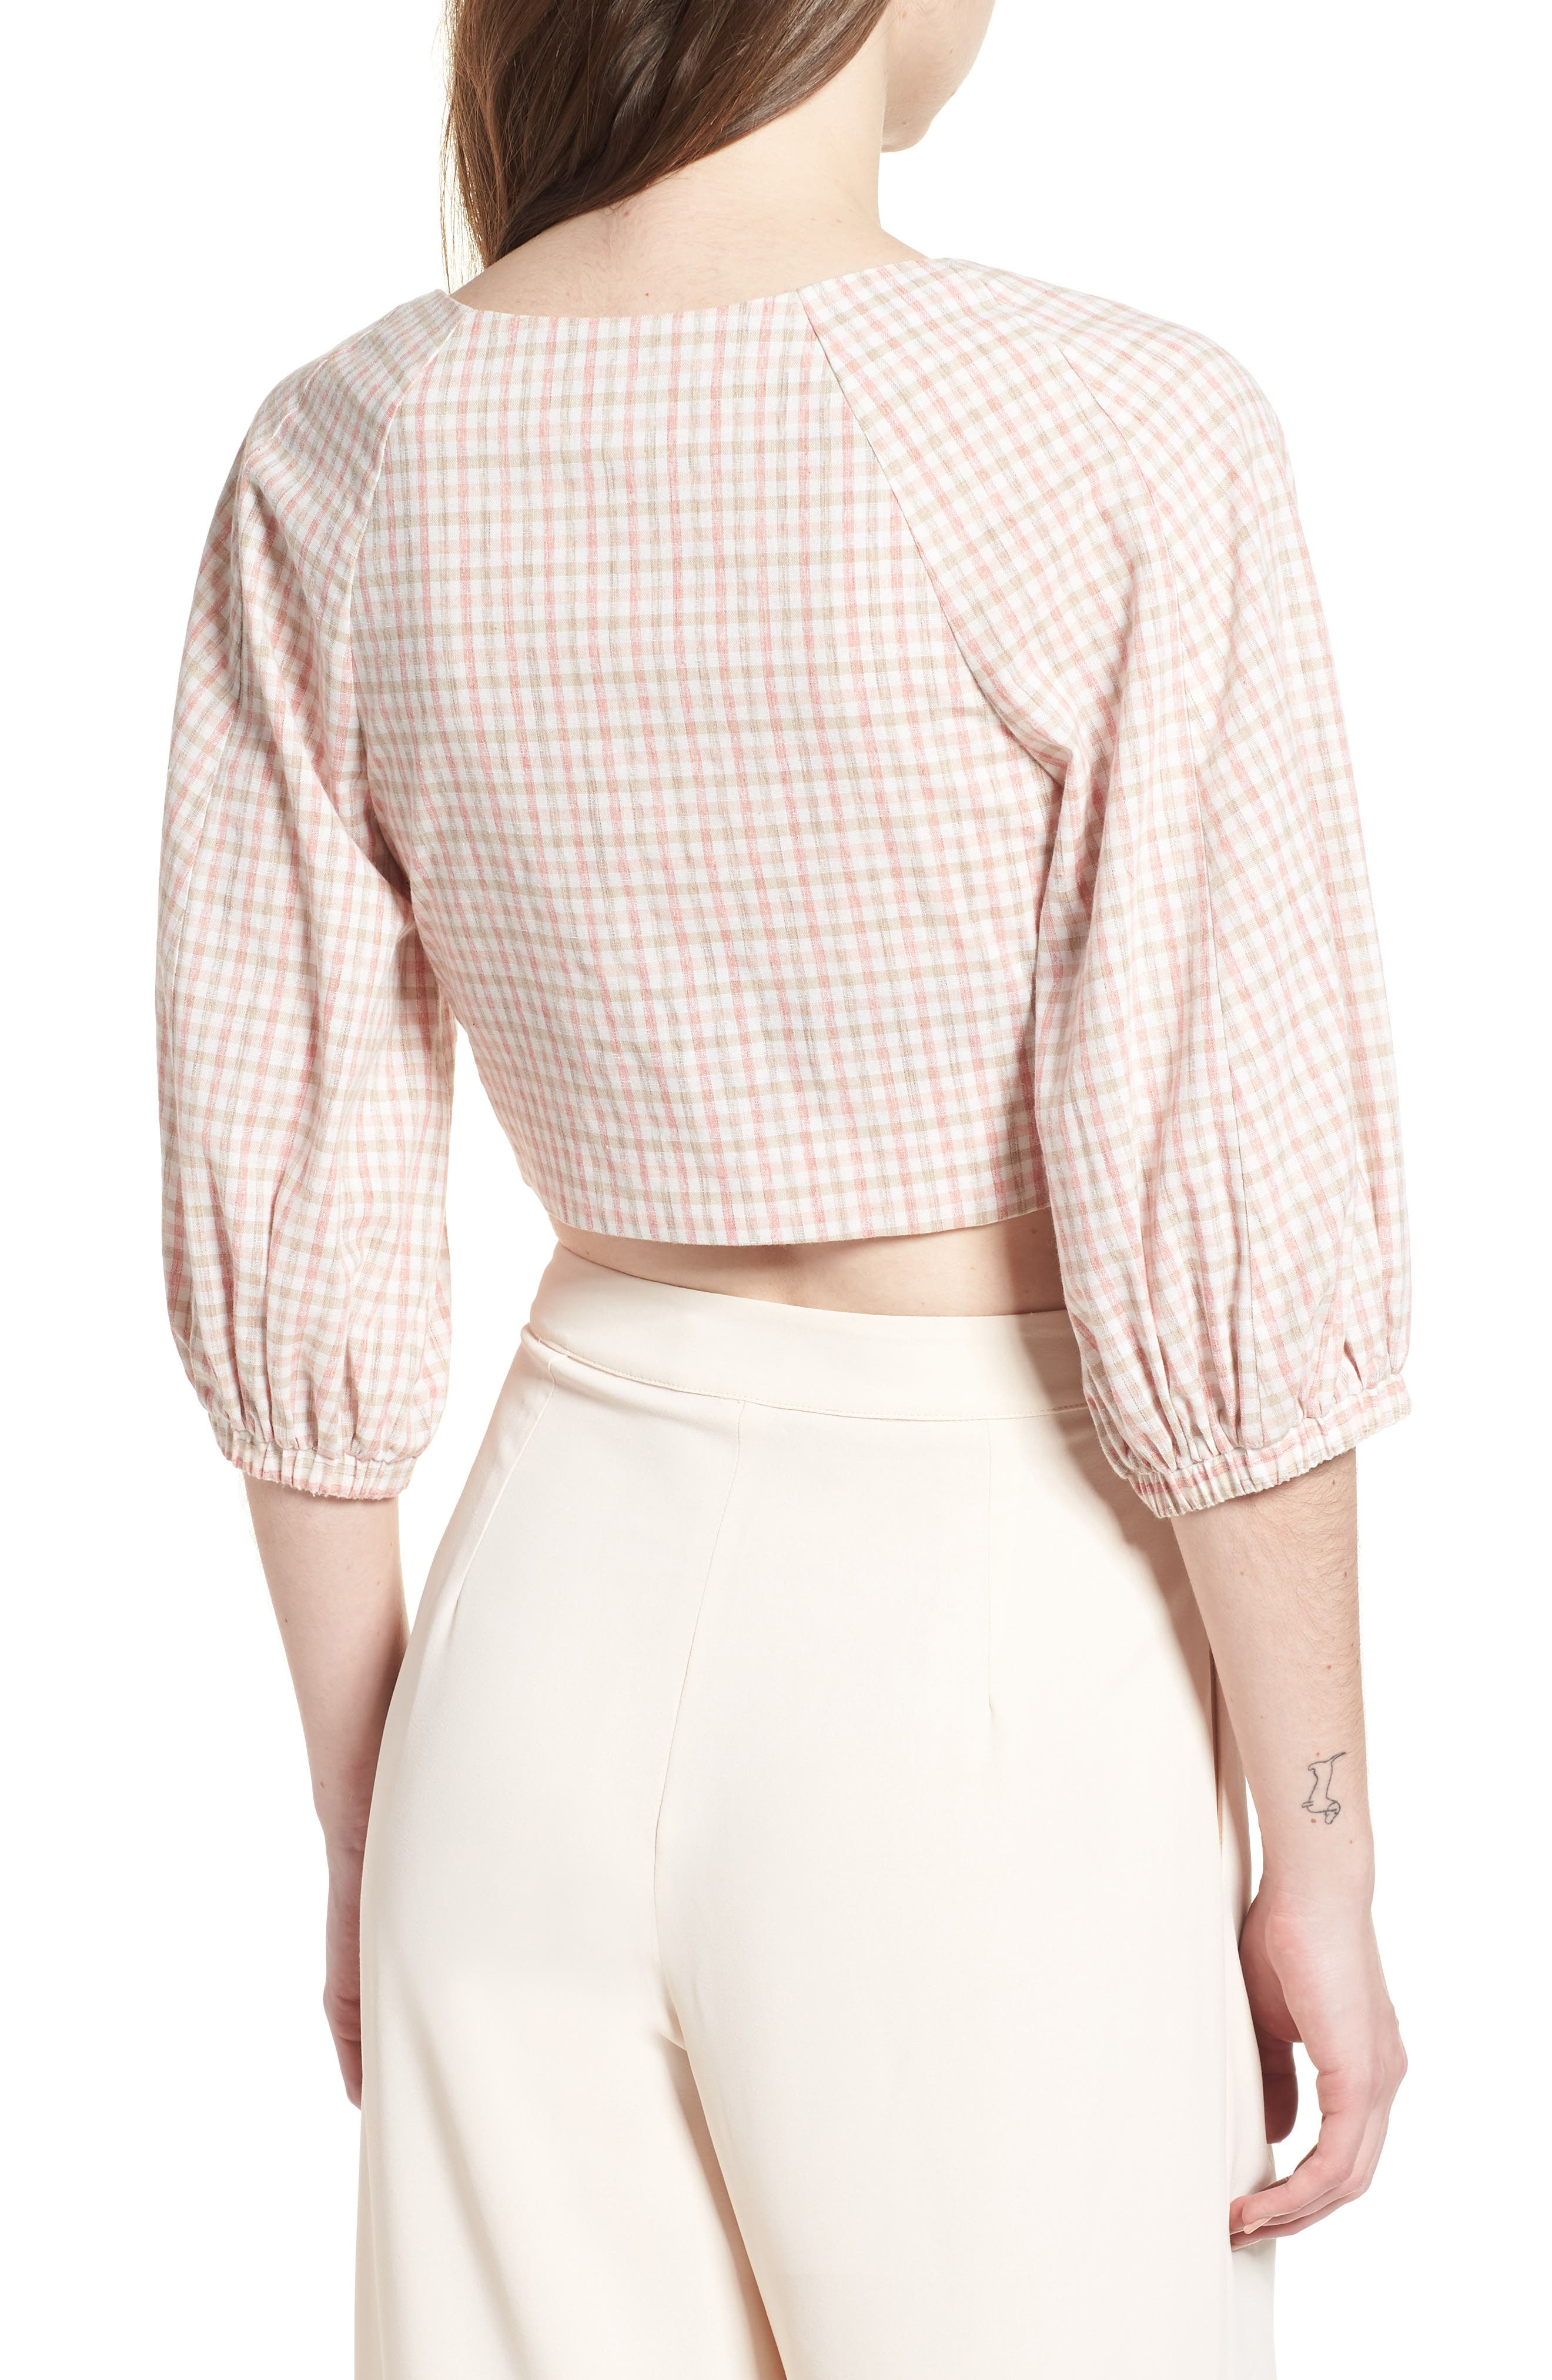 J.O.A., Chriselle x J.O.A. Ruched Front Crop Top, Alternate thumbnail 2, color, 650